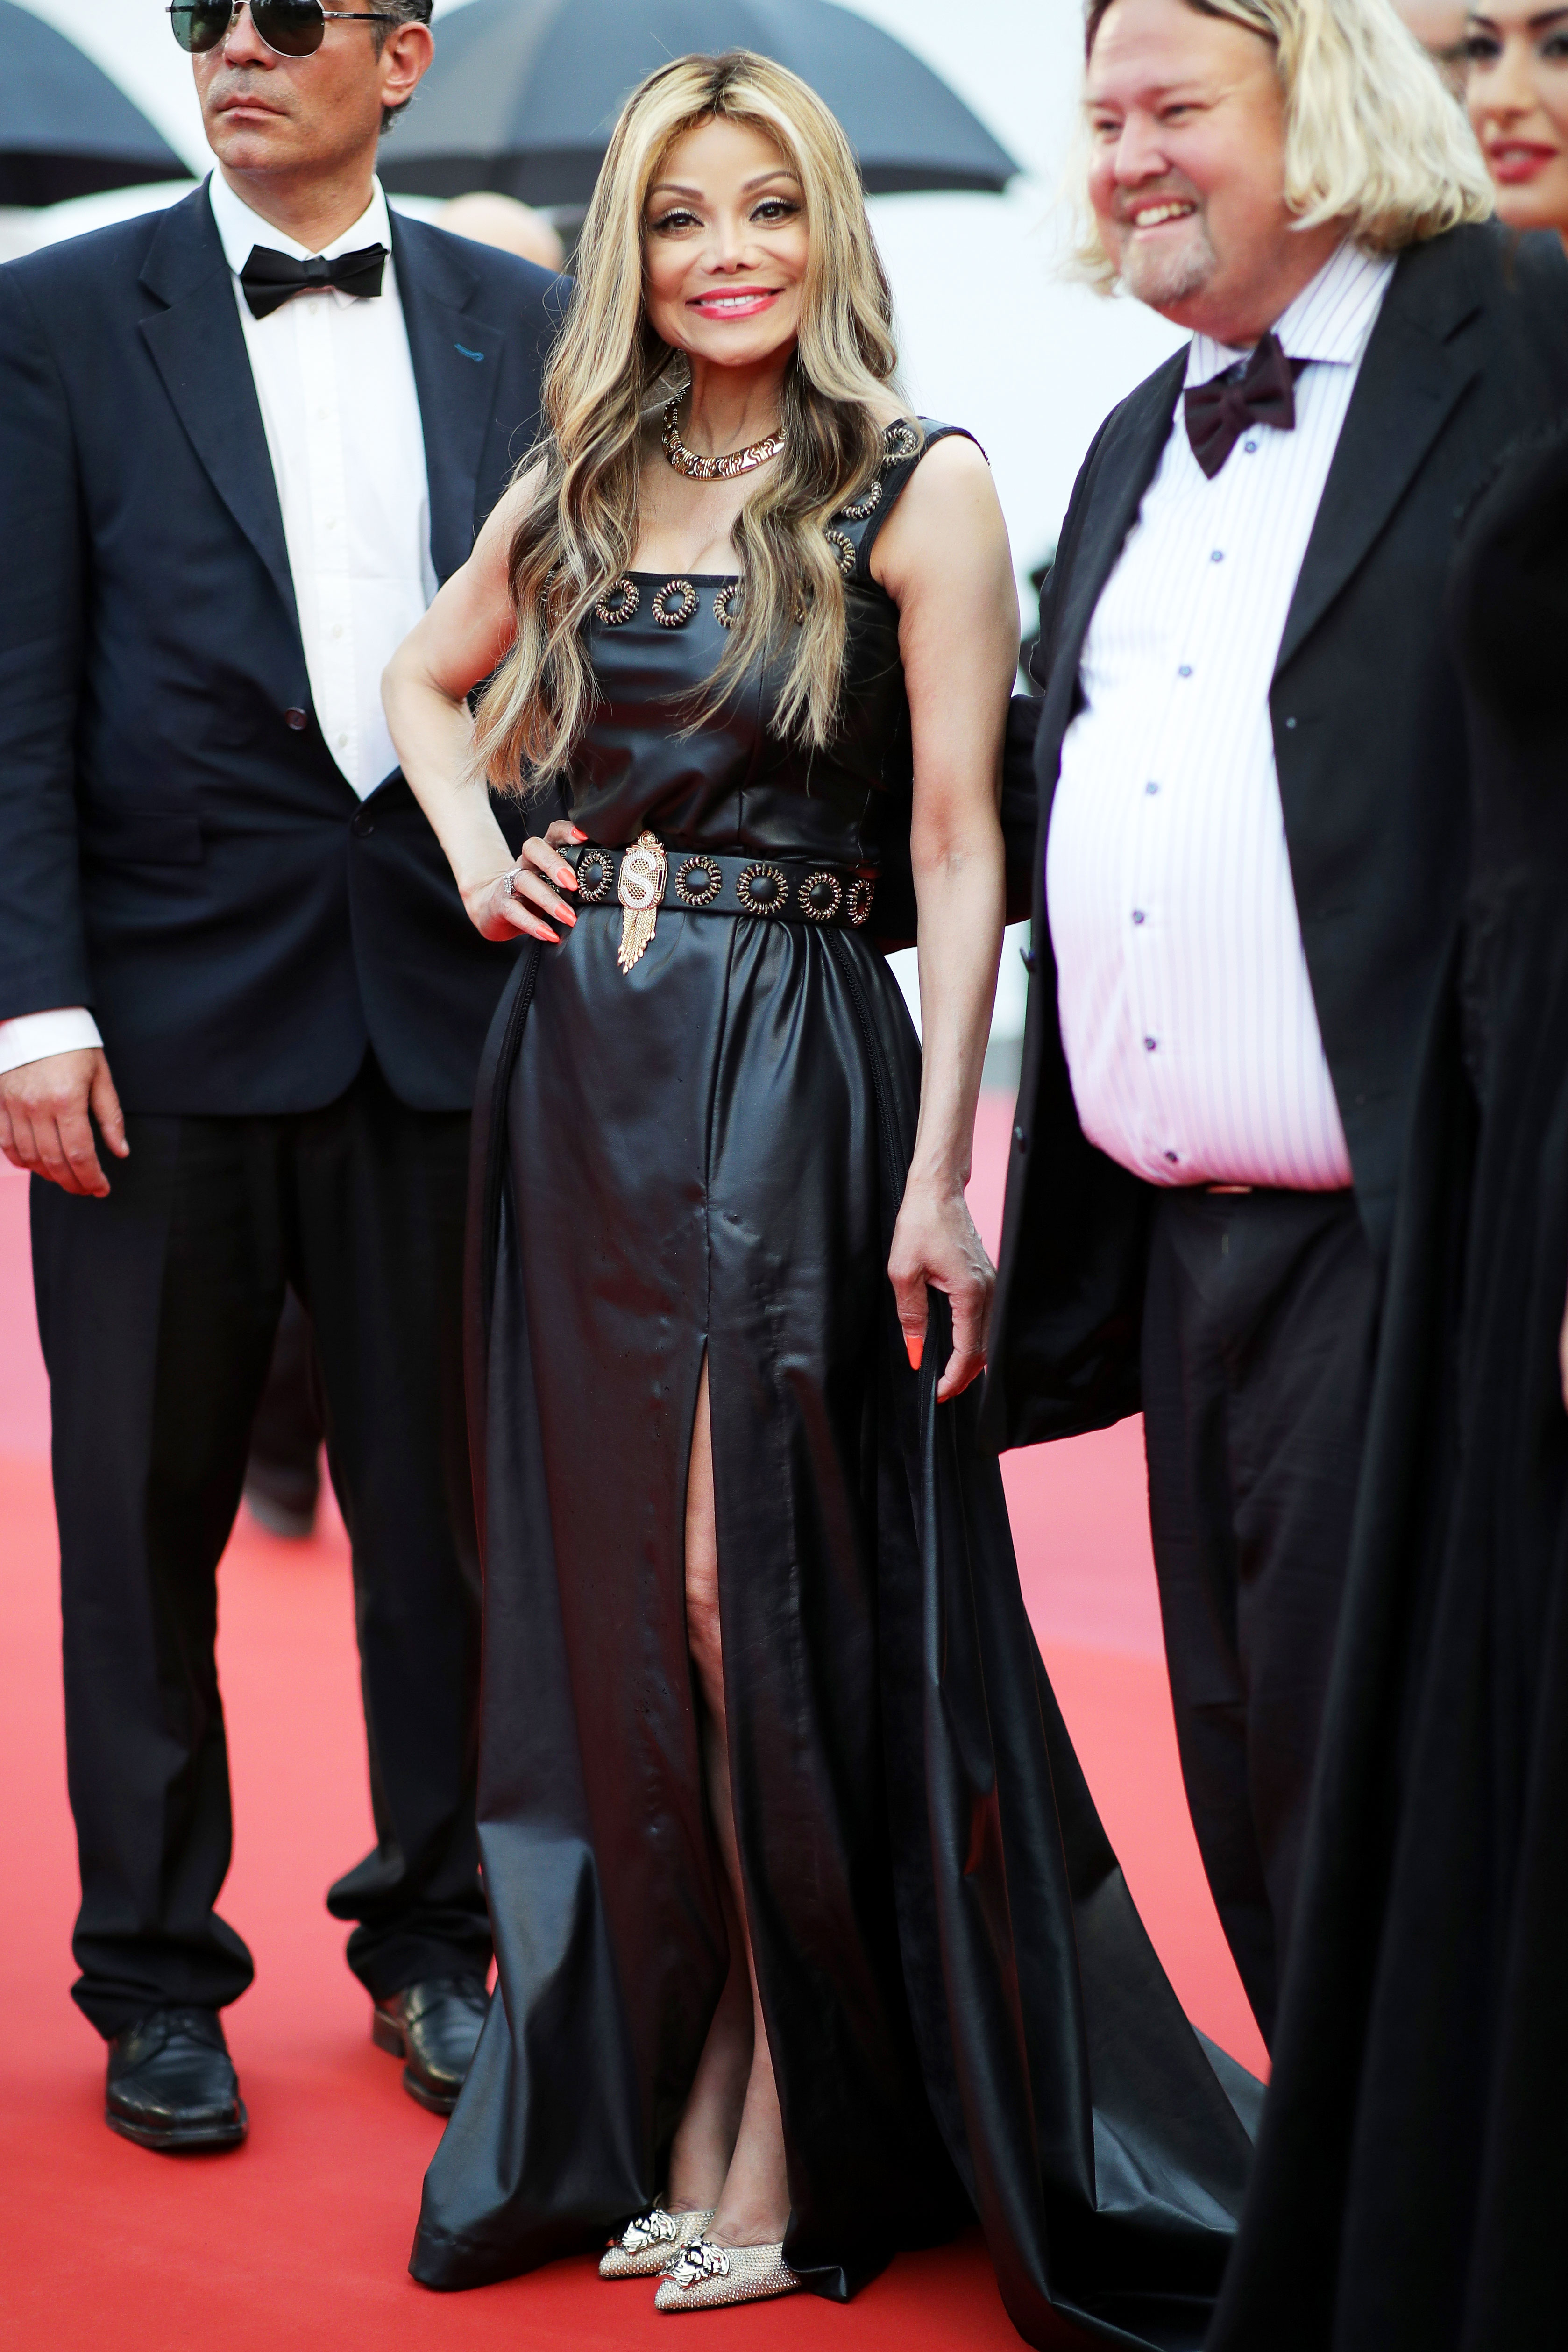 LA Toya Jackson - The 62-year-old songstress stole the show at the Burning screening on Wednesday, May 16, in a black leather gown with a thigh-high slit.